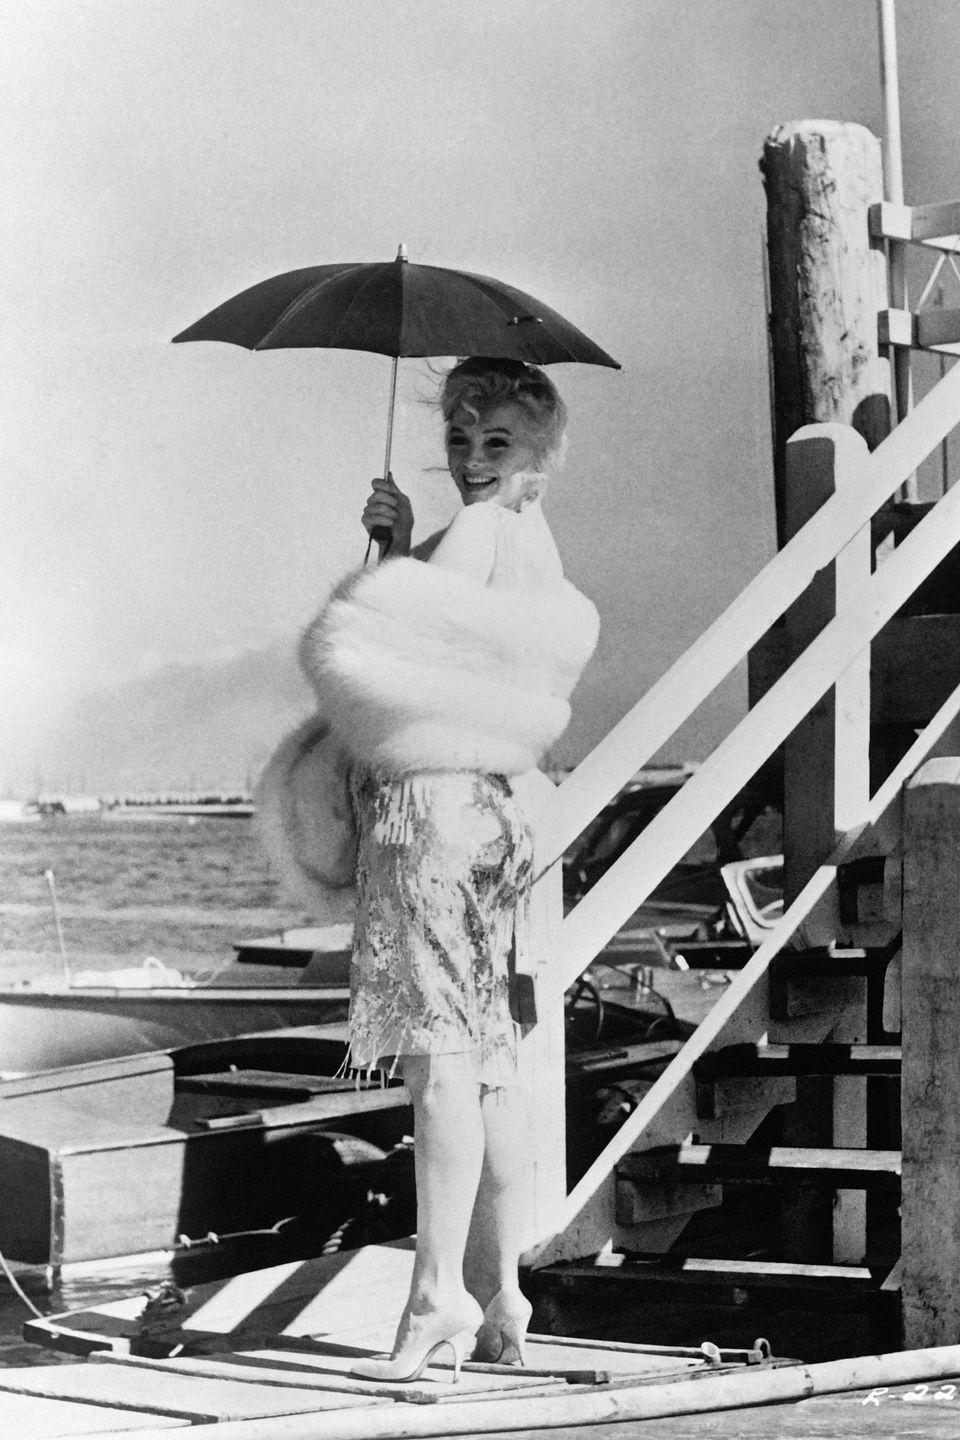 <p>Monroe on the set of <em>Some Like it Hot. </em>It became notorious for its behind the scenes difficulties, but upon its release in March 1959, it became a critical and commercial success, even earning Monroe a Golden Globe award. </p>